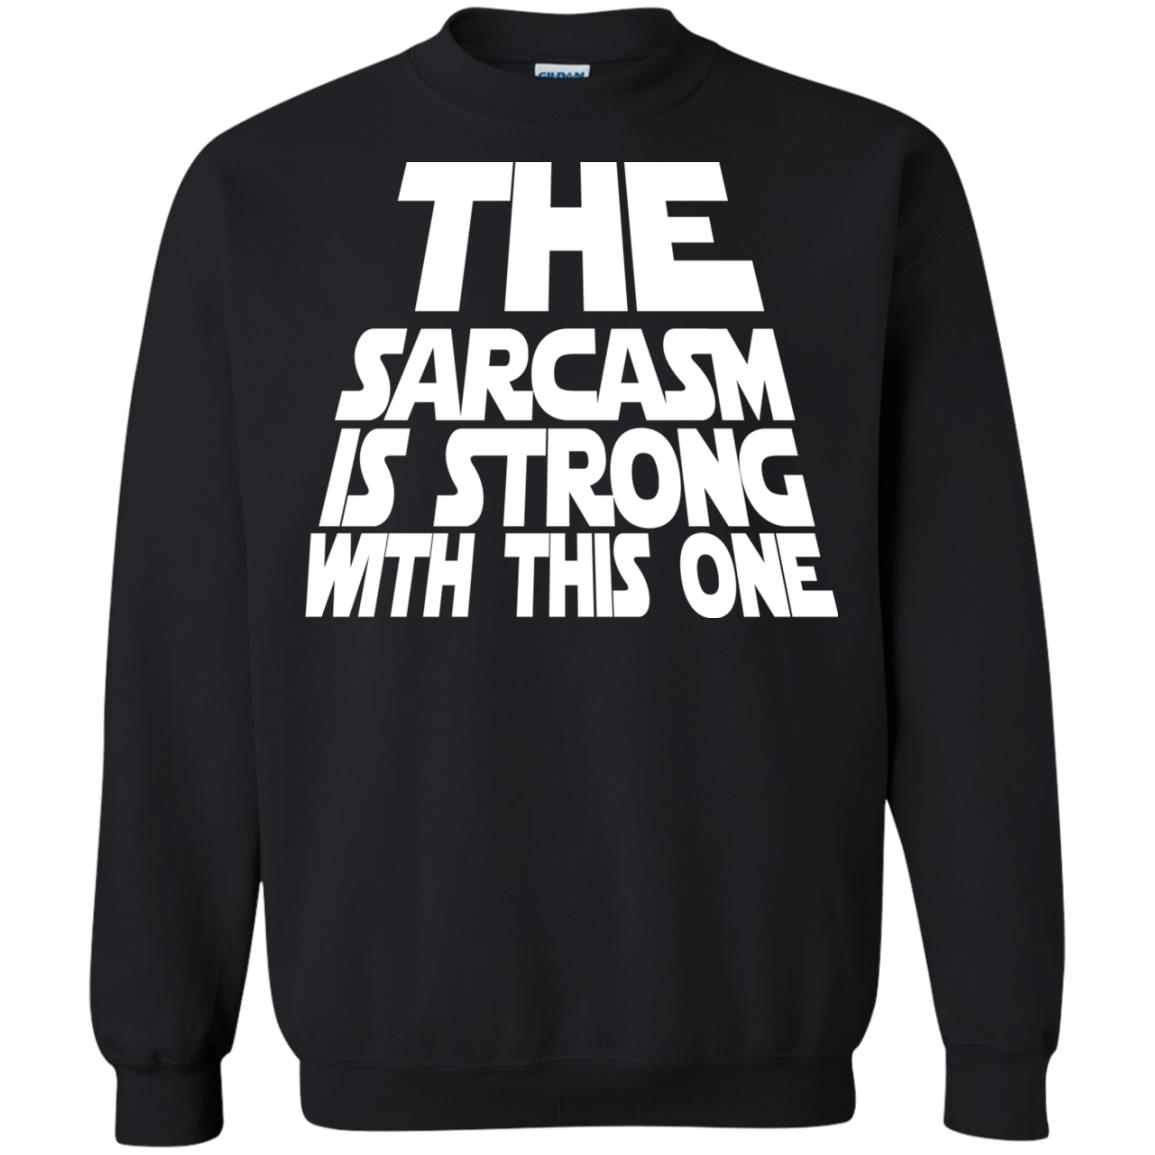 image 1798 - The Sarcasm is strong with this one shirt